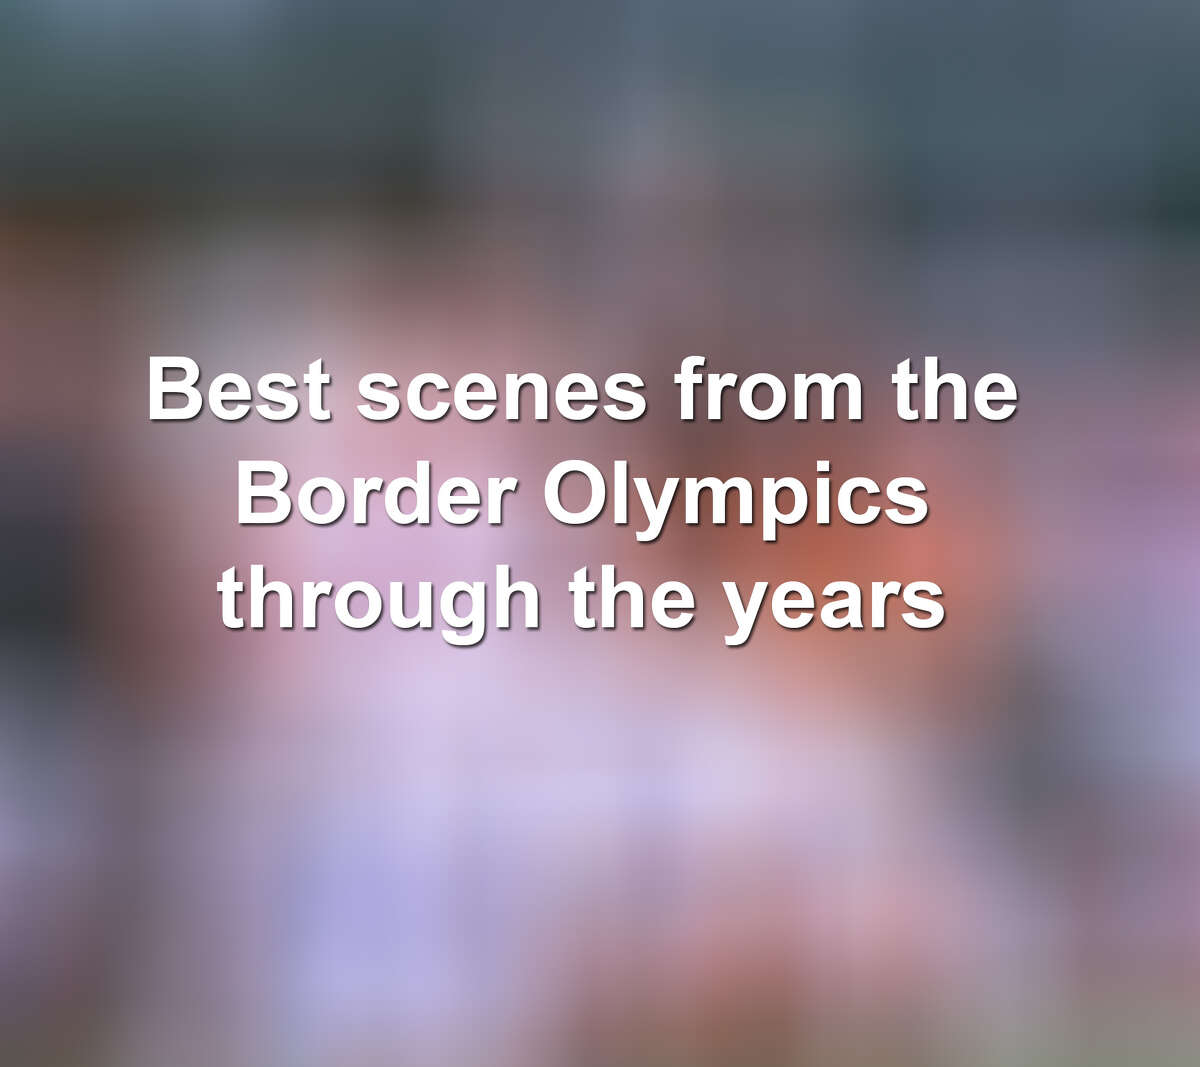 Keep scrolling to see some of the best scenes from Laredo's Border Olympics over the years.